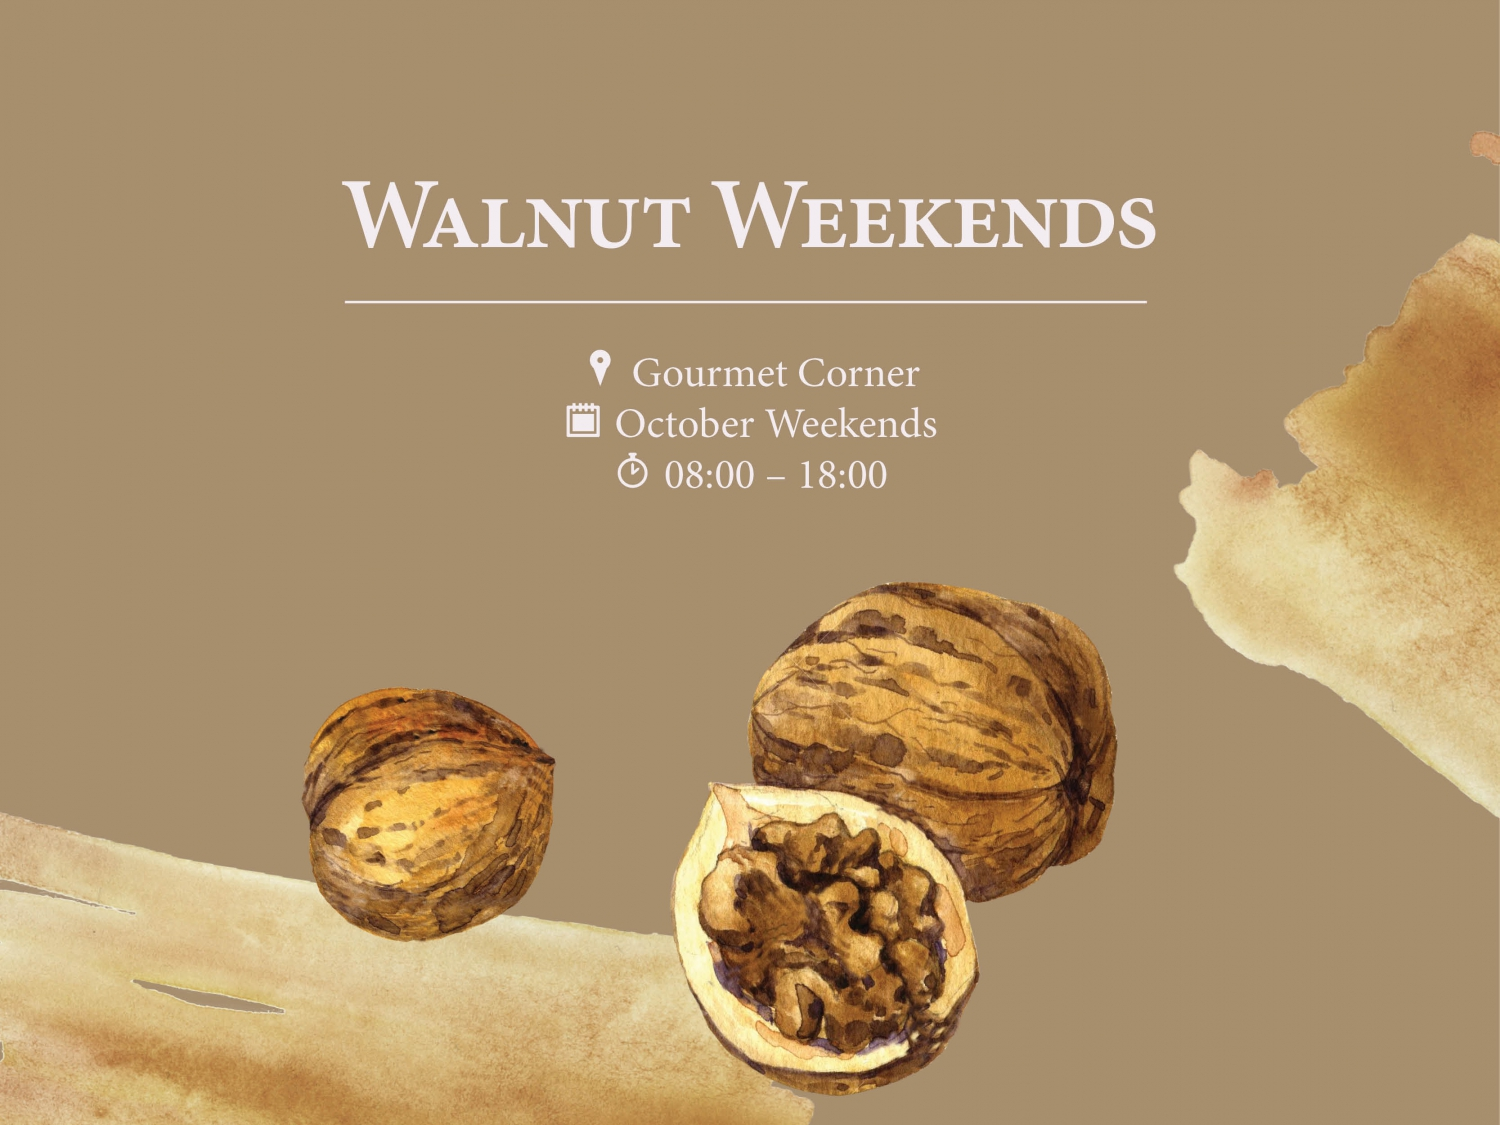 Walnut Weekends